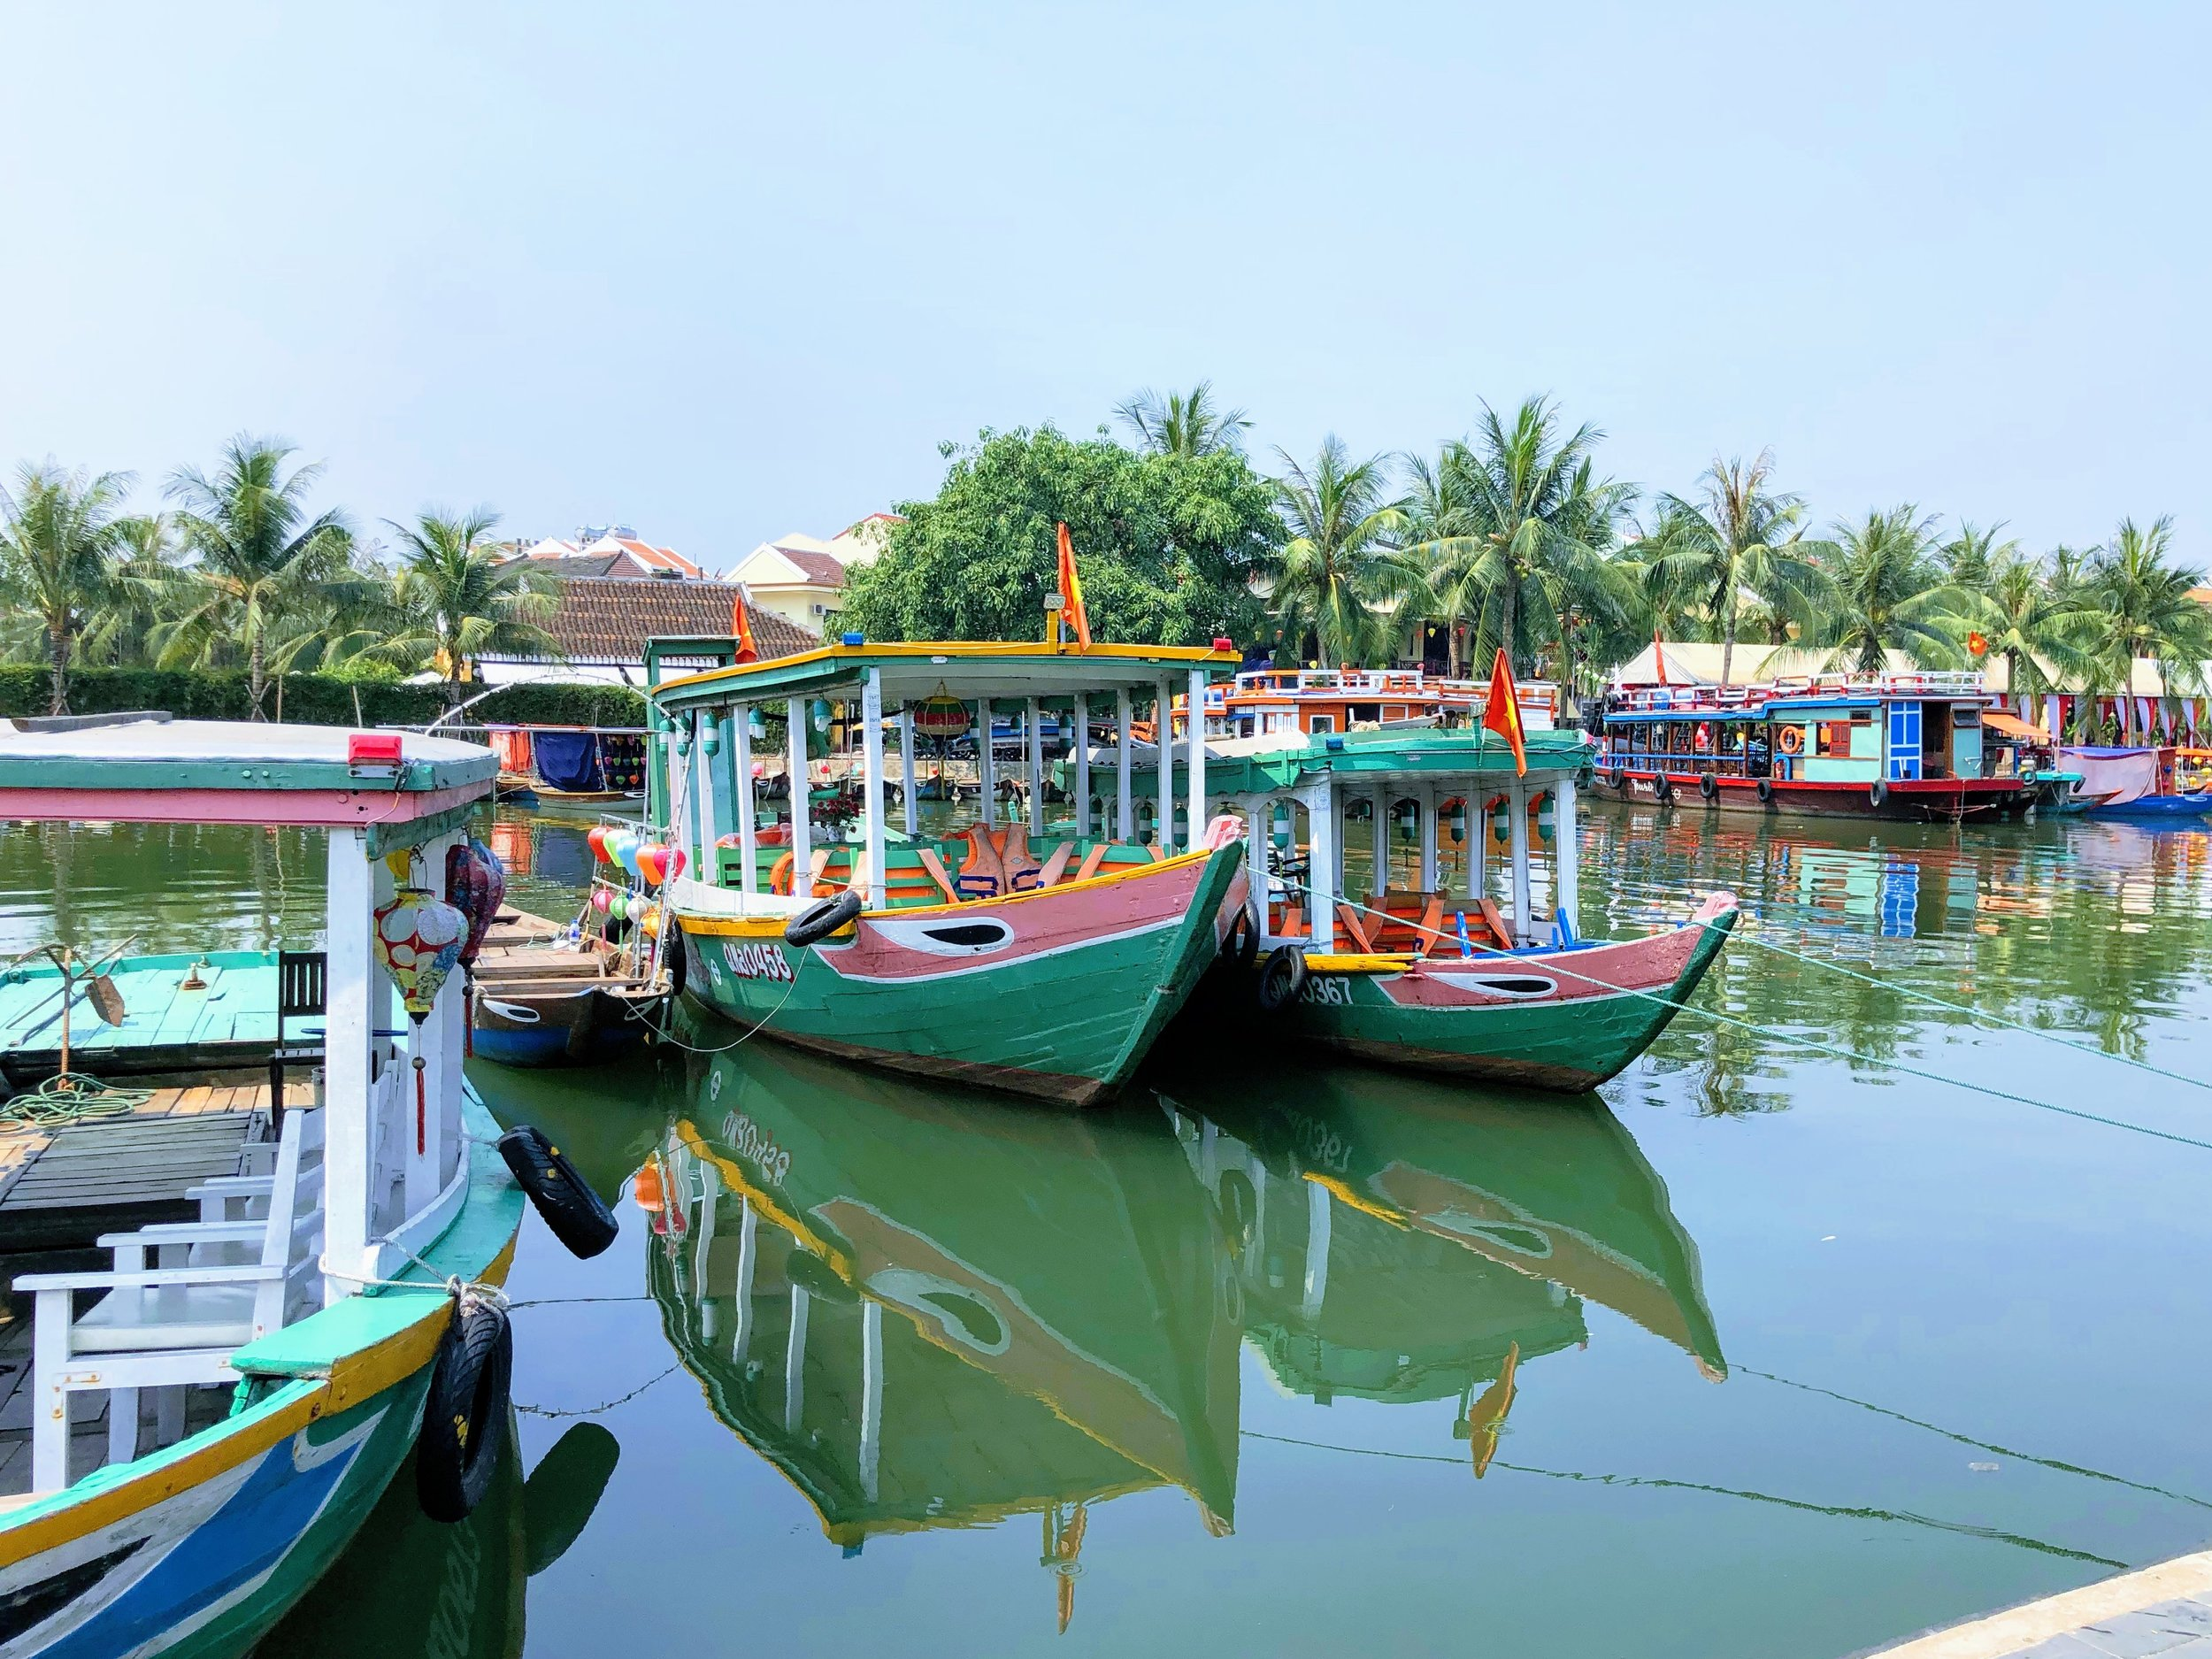 Boats docked along the river in Hoi An.